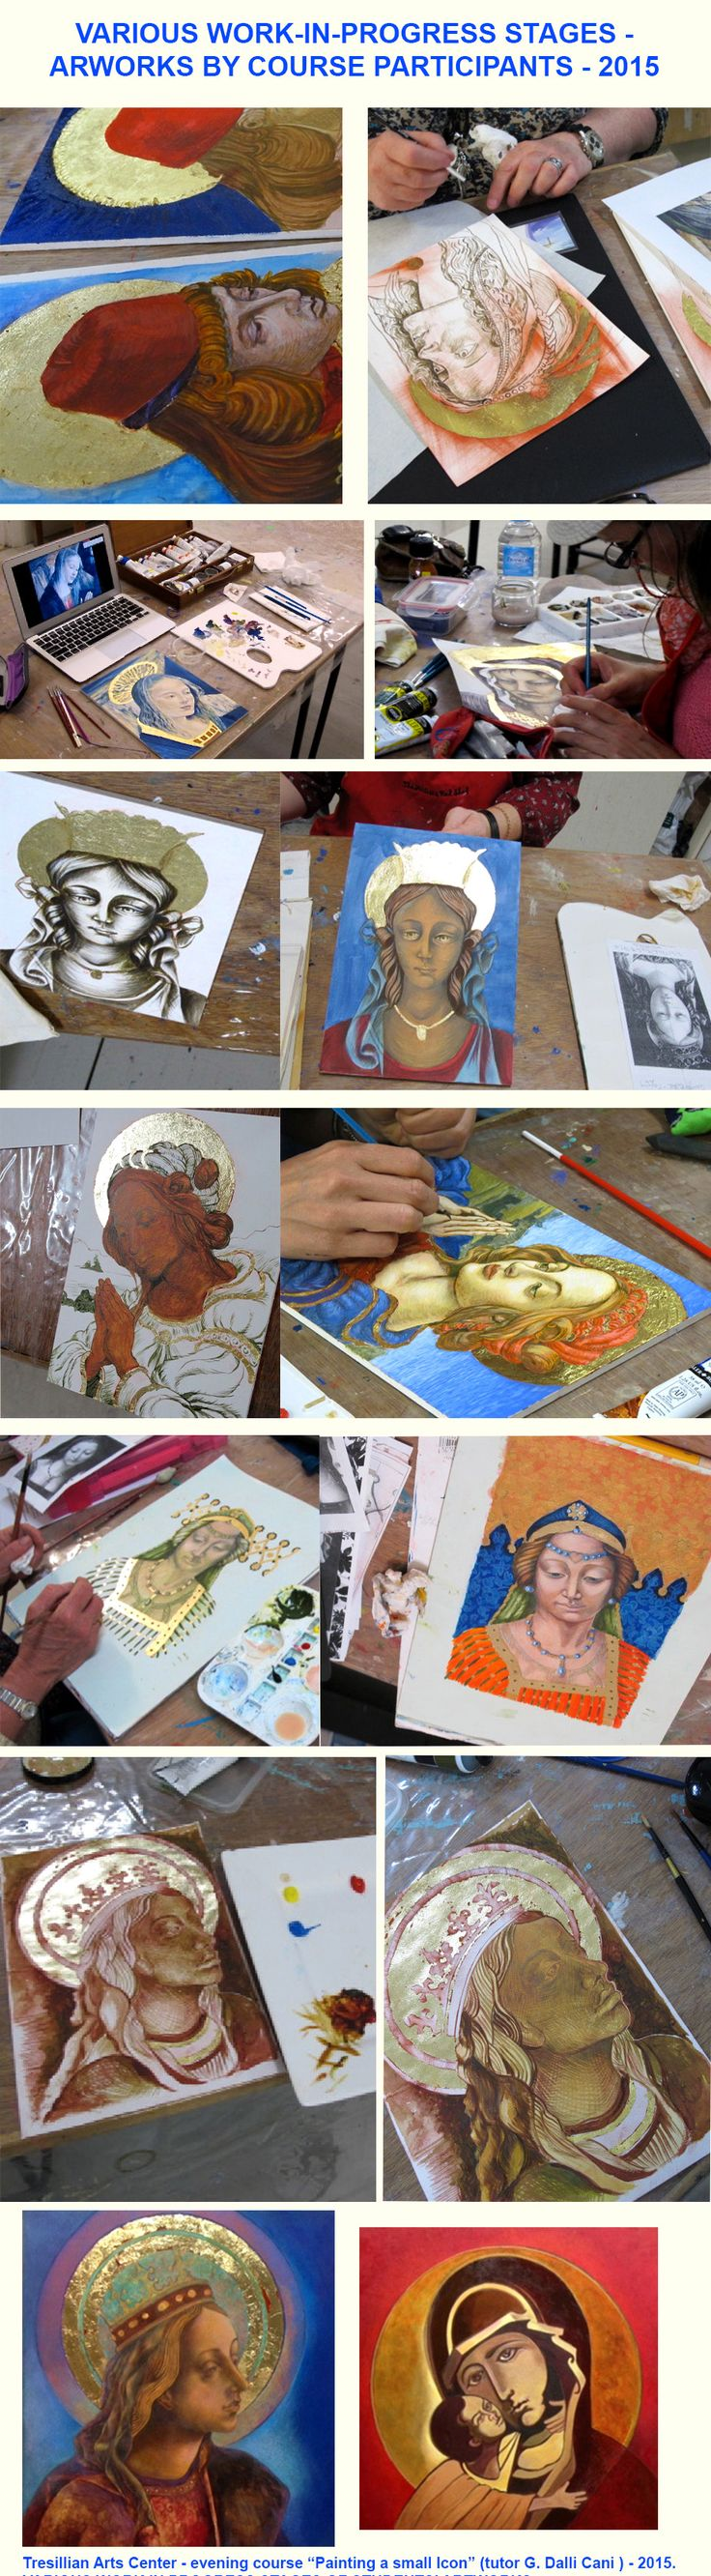 G. Dalli Cani - Tutoring at Tresillian Art Centre - Work in progress of artworks created by the students.